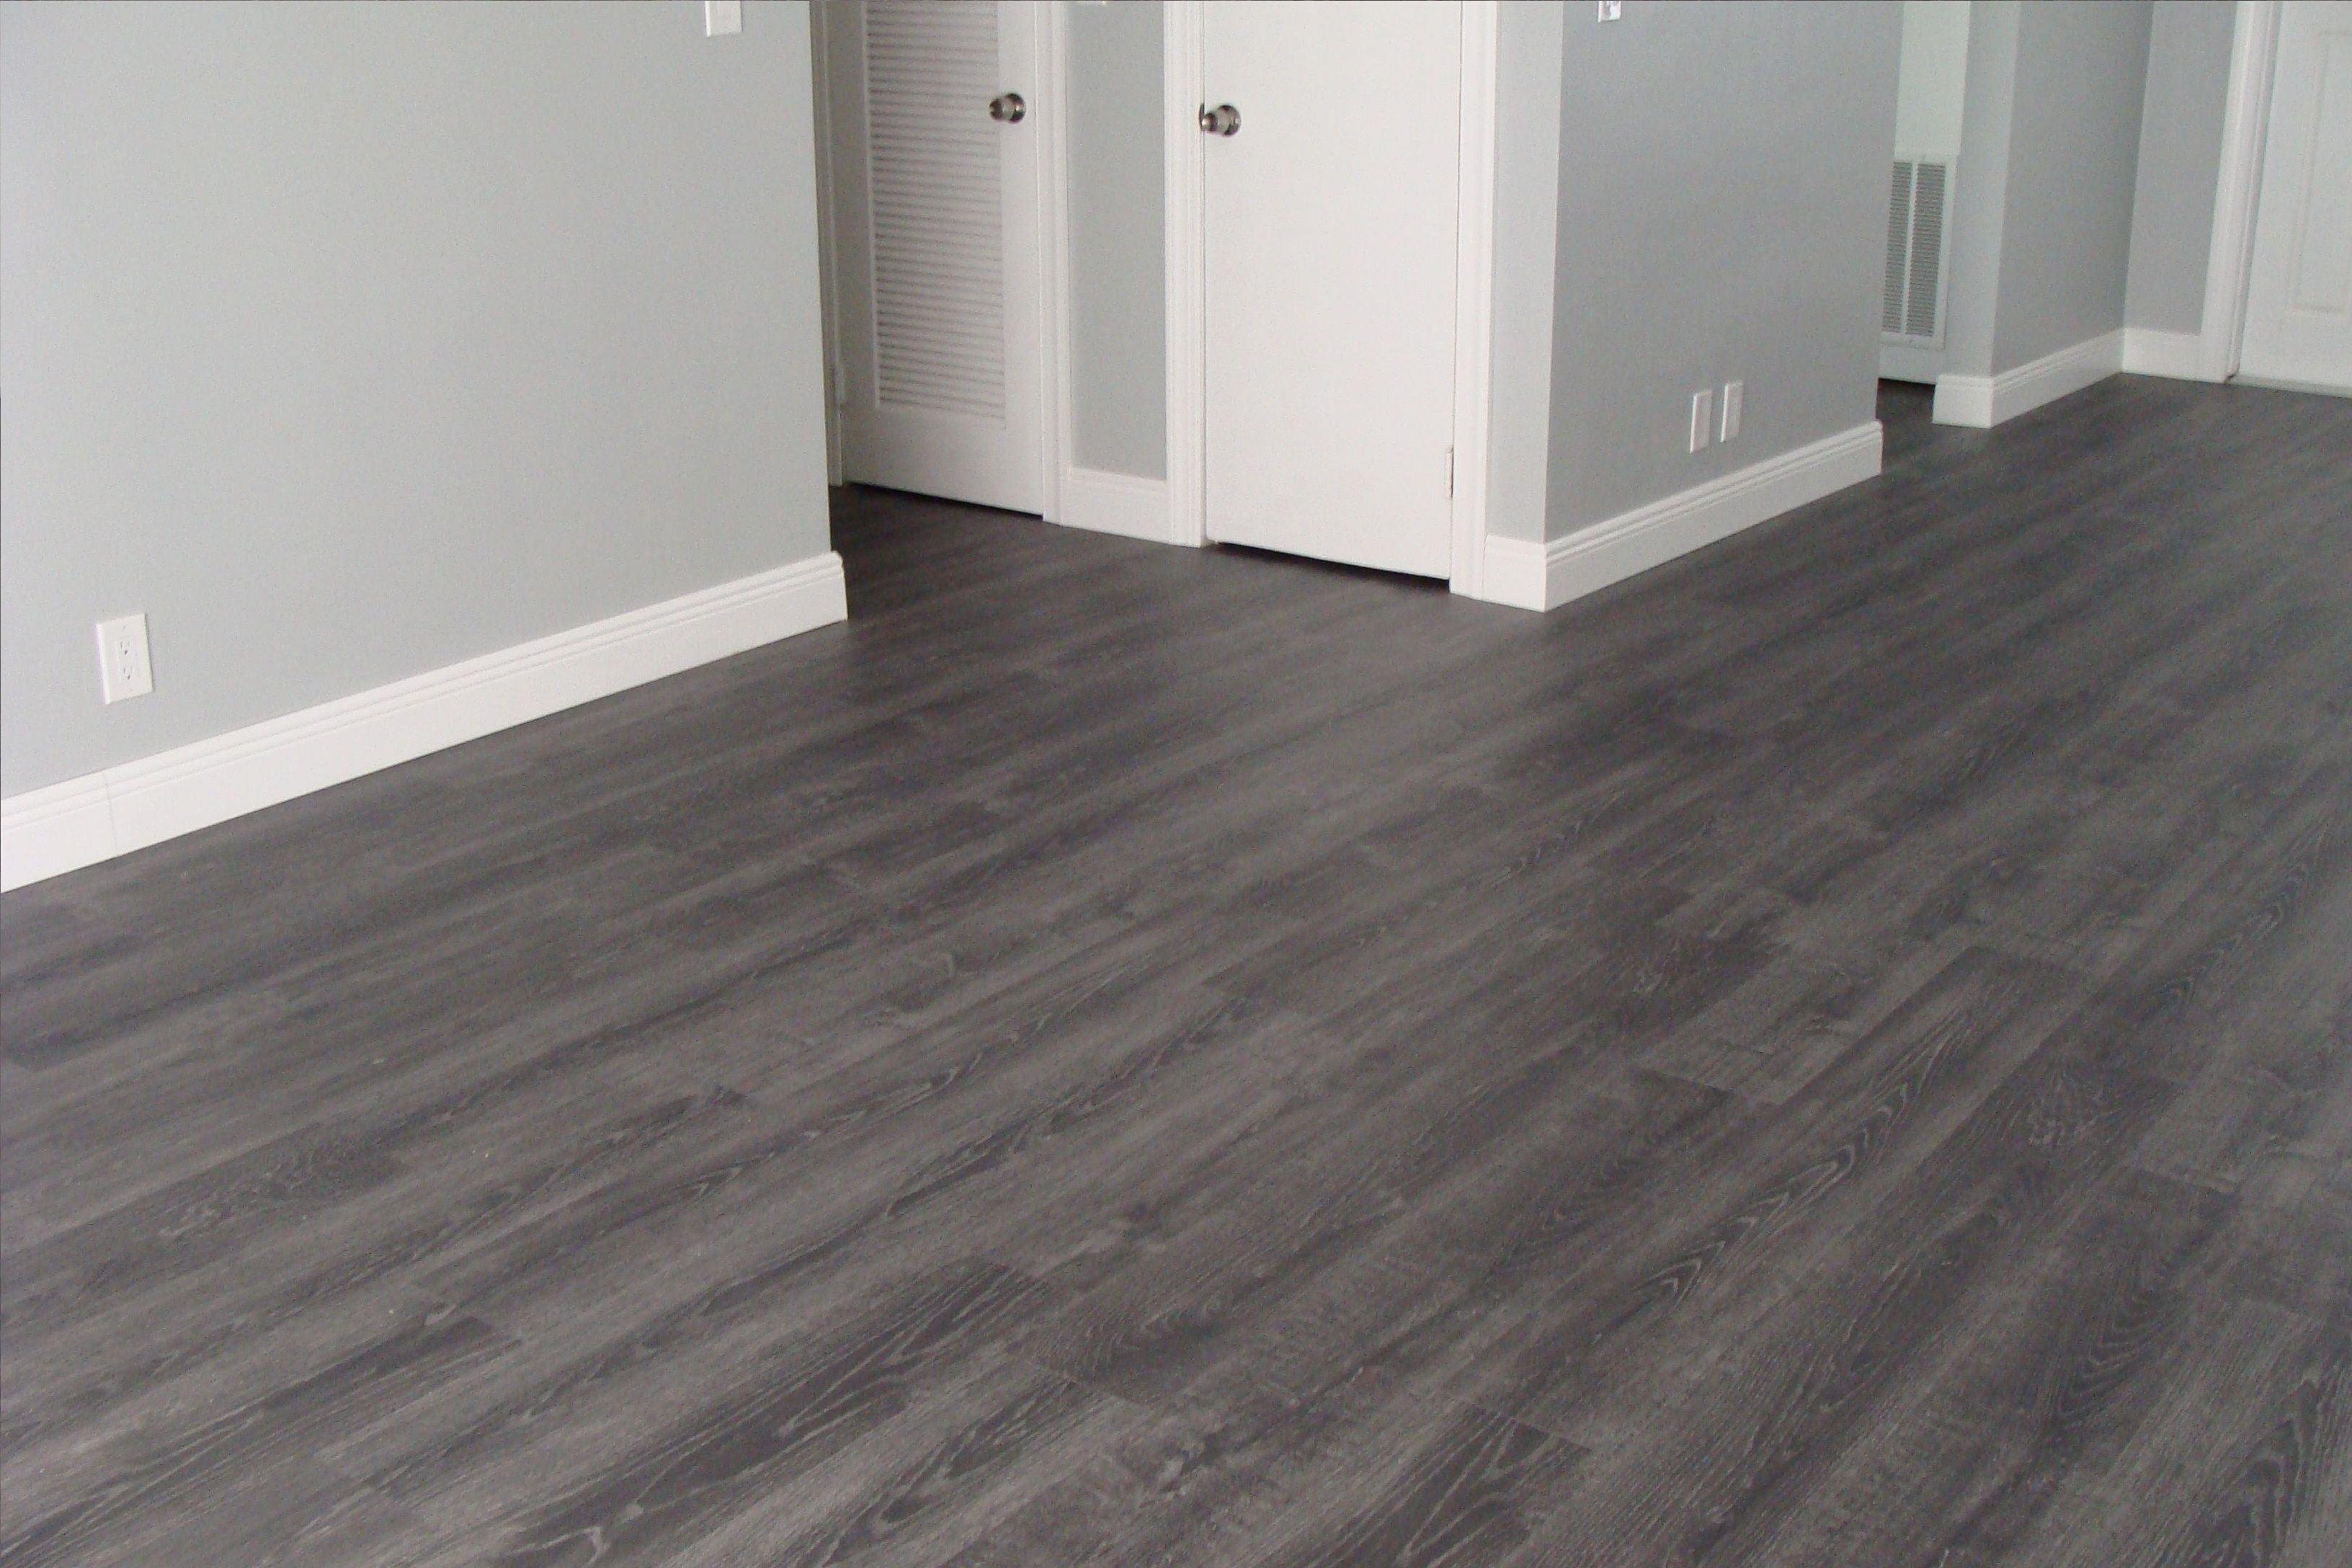 Basement Decor Uncover A Lot Of Stylish Finished Basement Remodelling Options That Will Help You Cre Grey Laminate Flooring Grey Hardwood Floors Grey Flooring